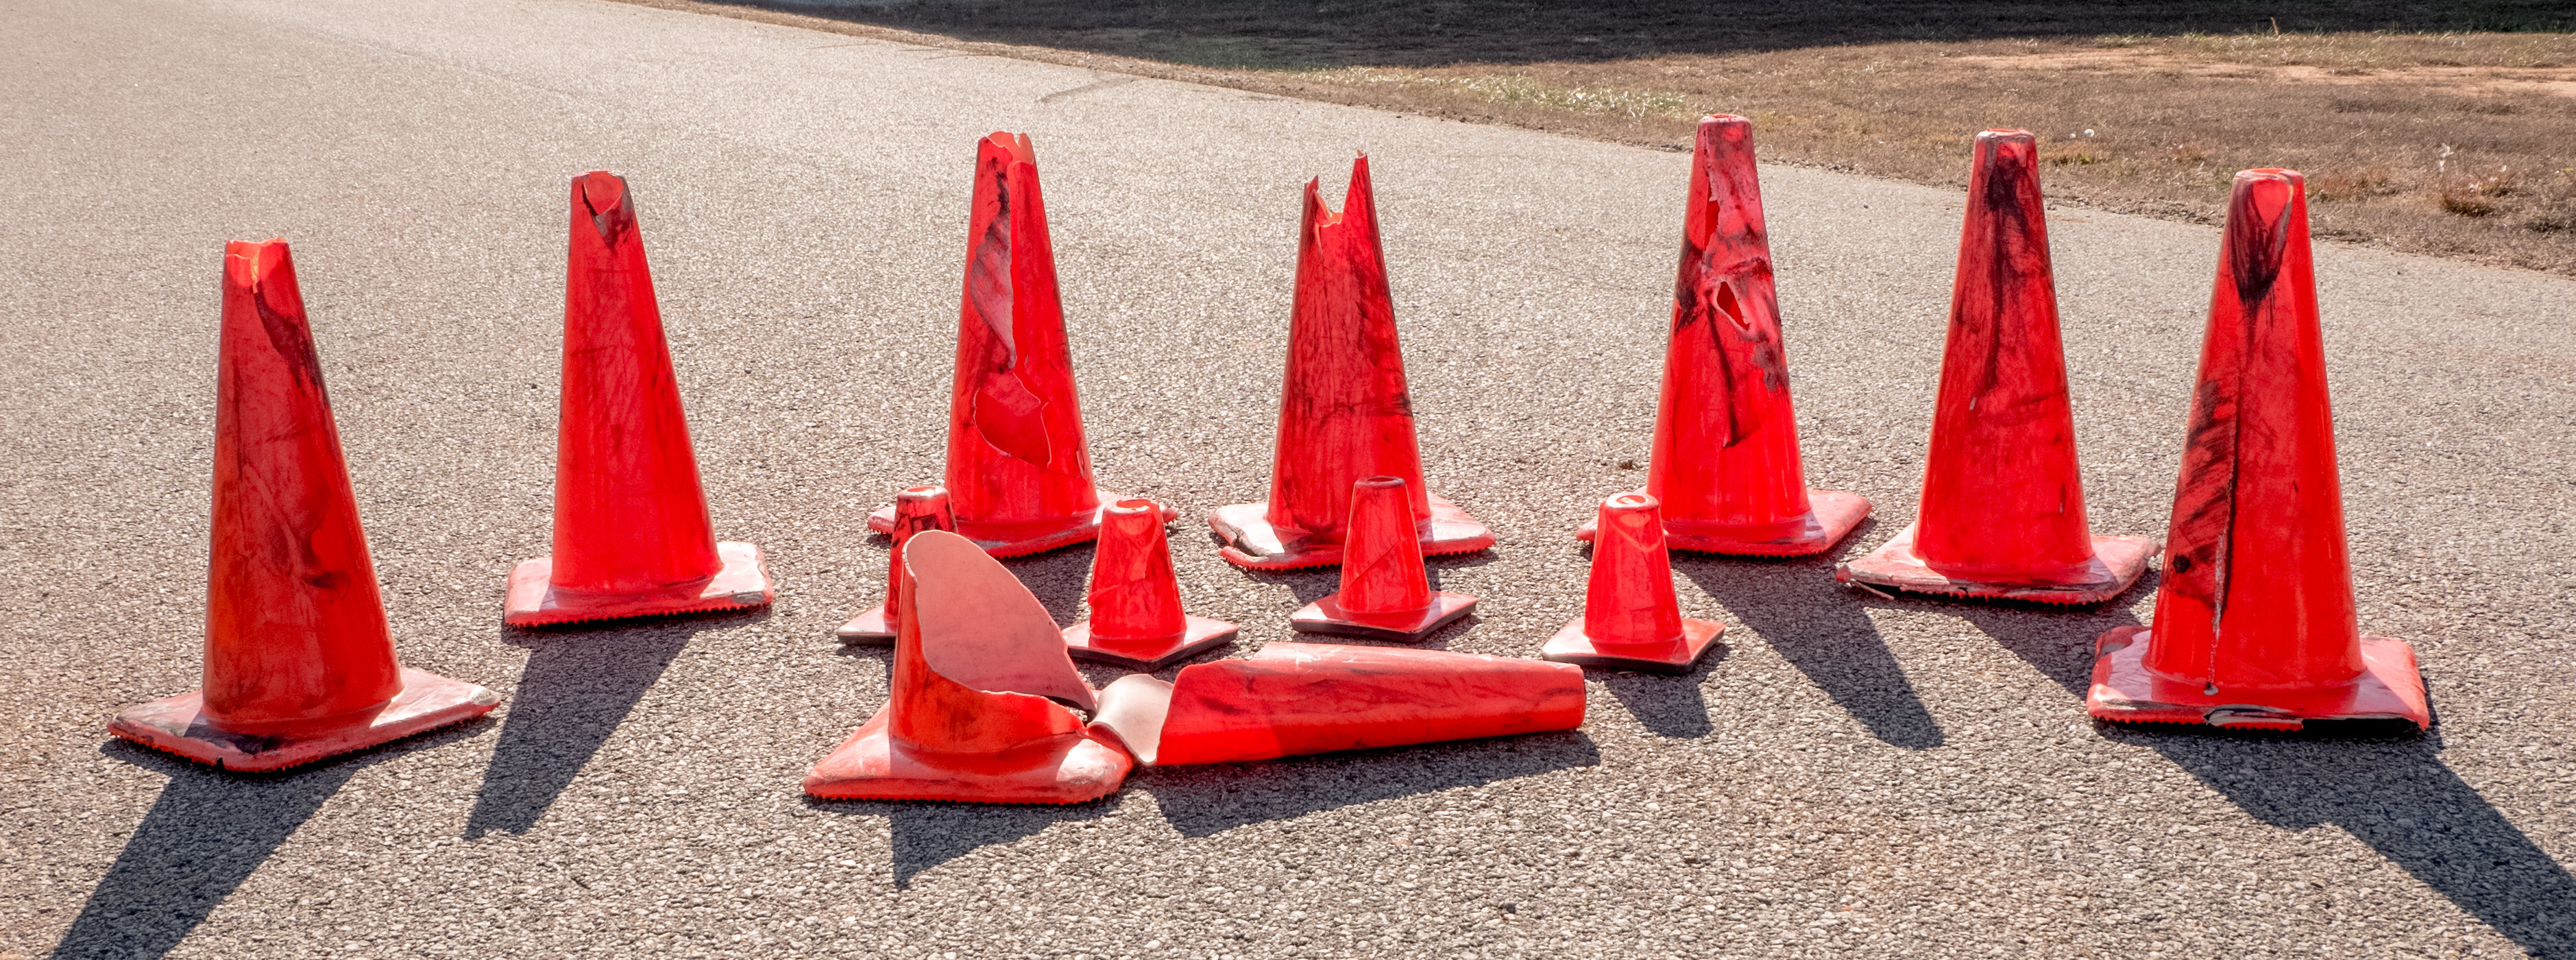 6 Inch Cones Needed 00001